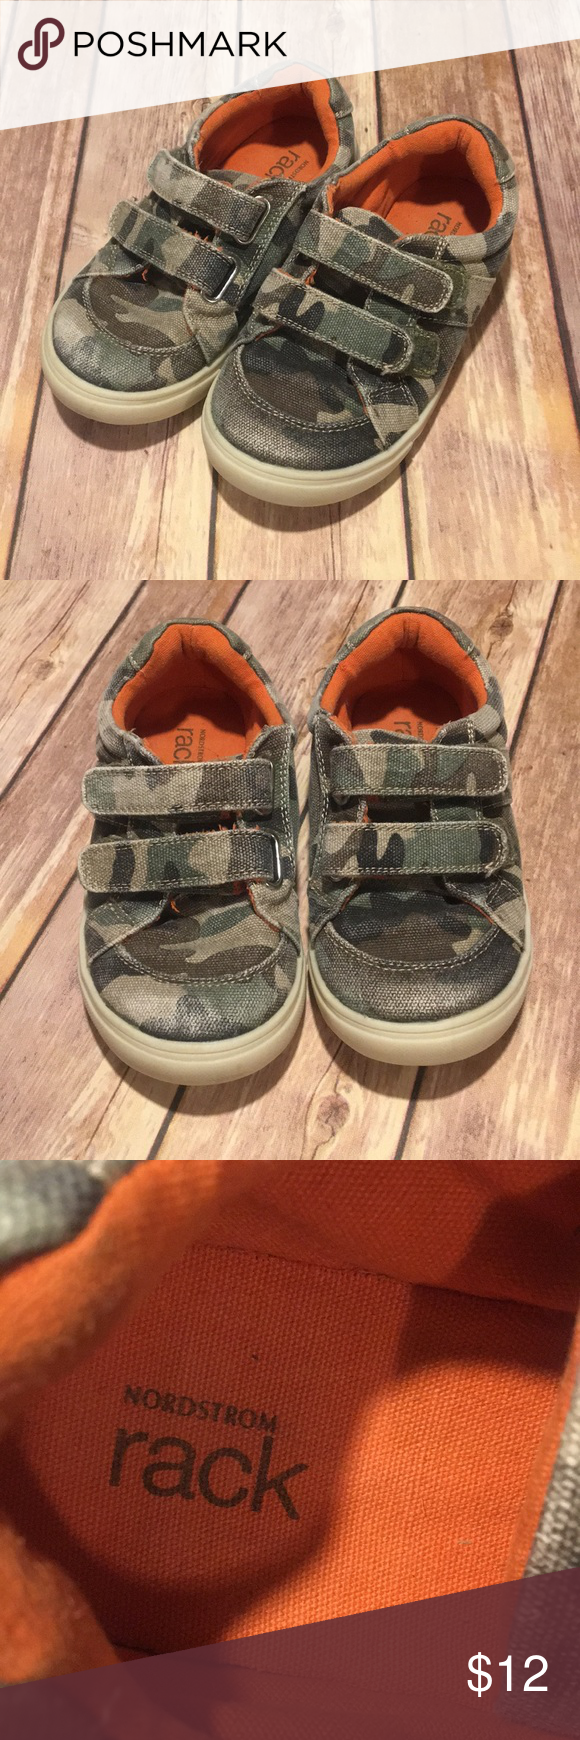 d04040f2f42bf Nordstrom Rack Velcro Camouflage Boys Shoes Nordstrom Rack Boys Shoes!  Super cute, camo size 12 shoes. Worn and loved but they still look good and  have lots ...